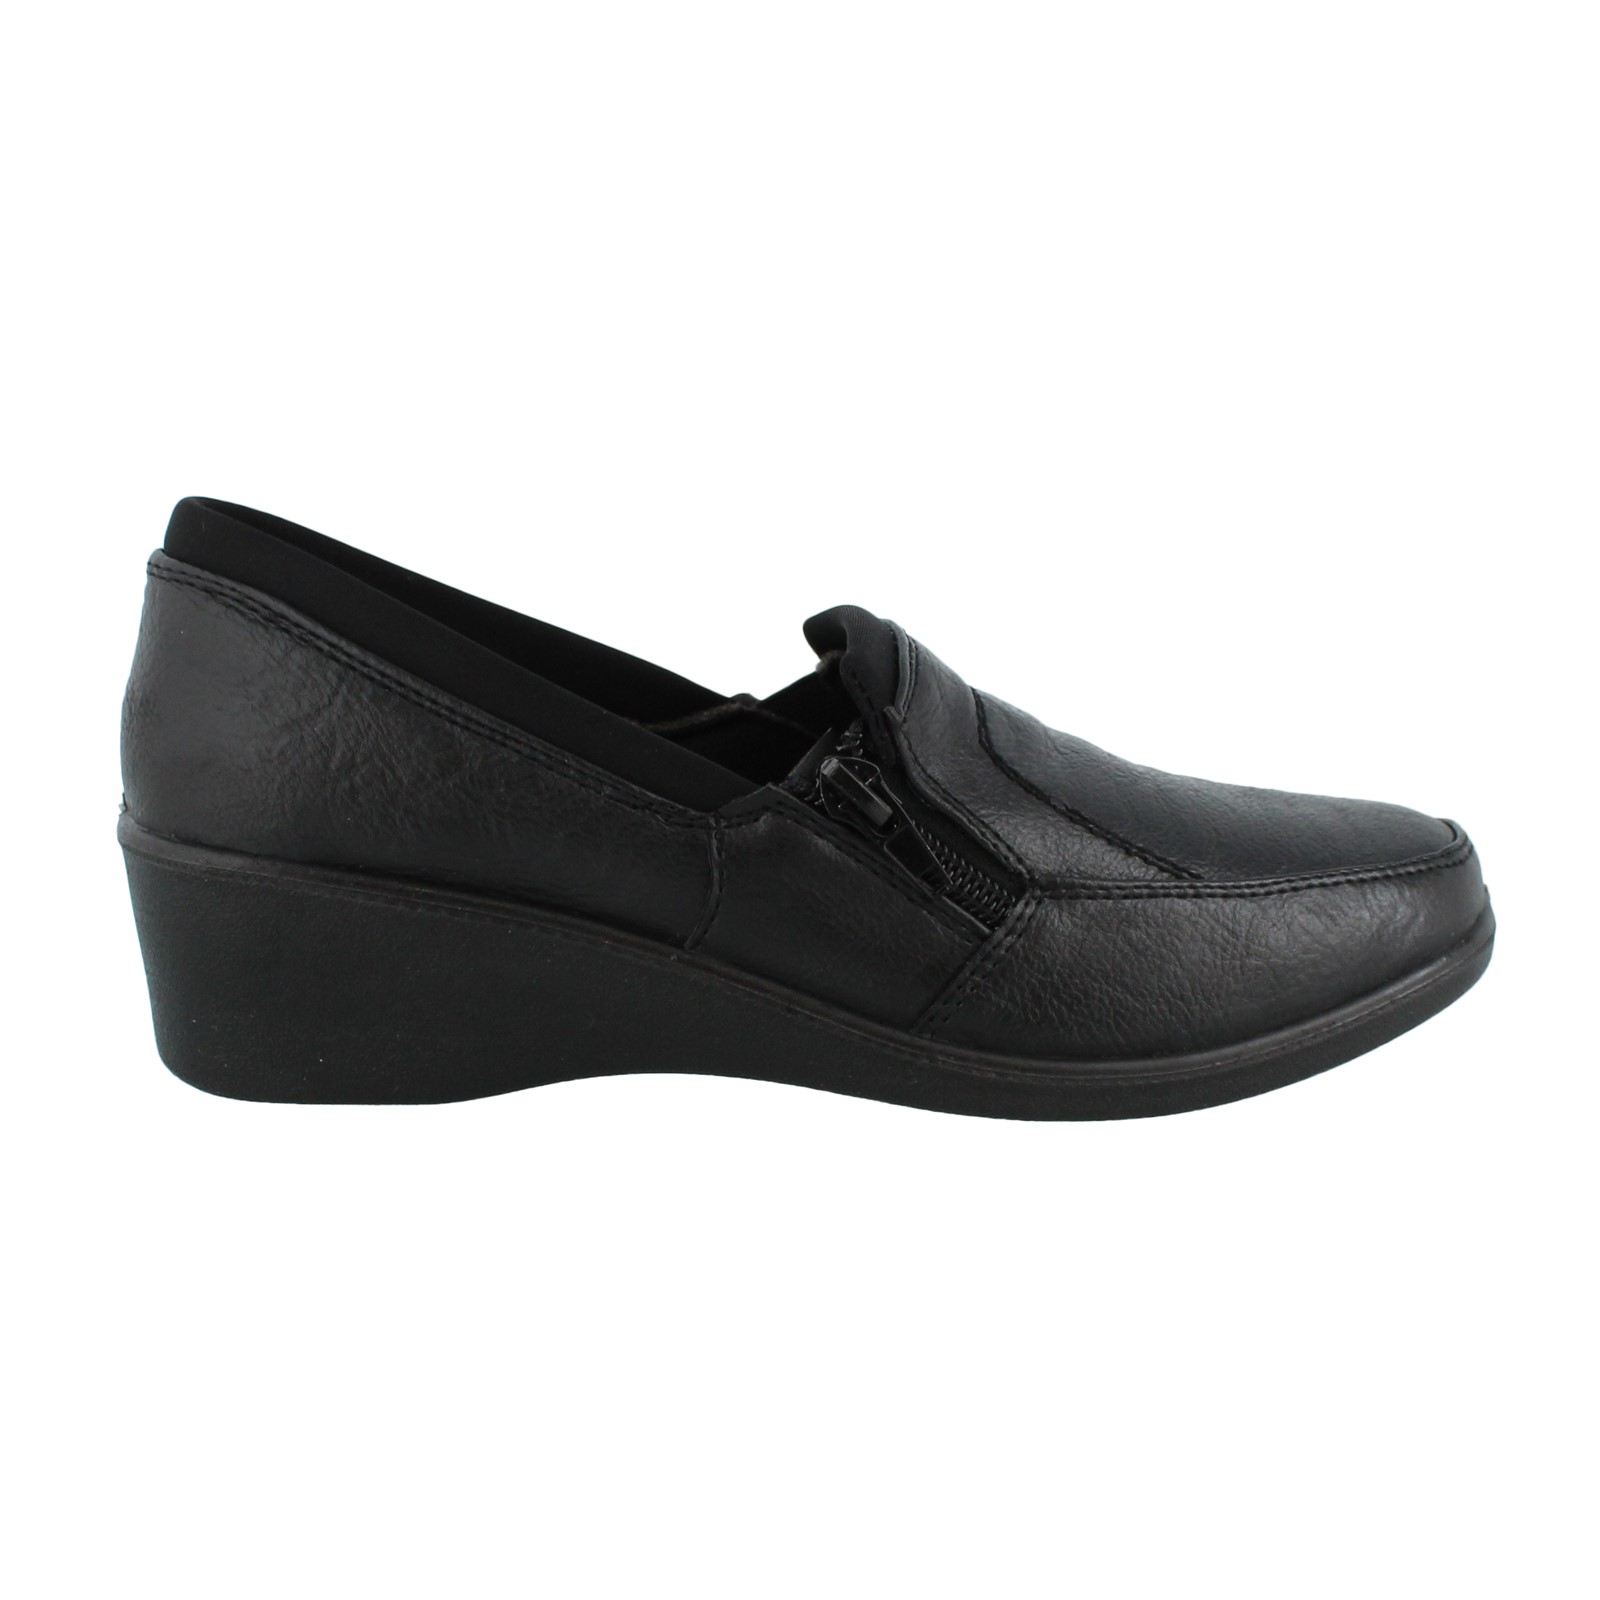 Women's Easy Street, Edith Low Heel Shoes